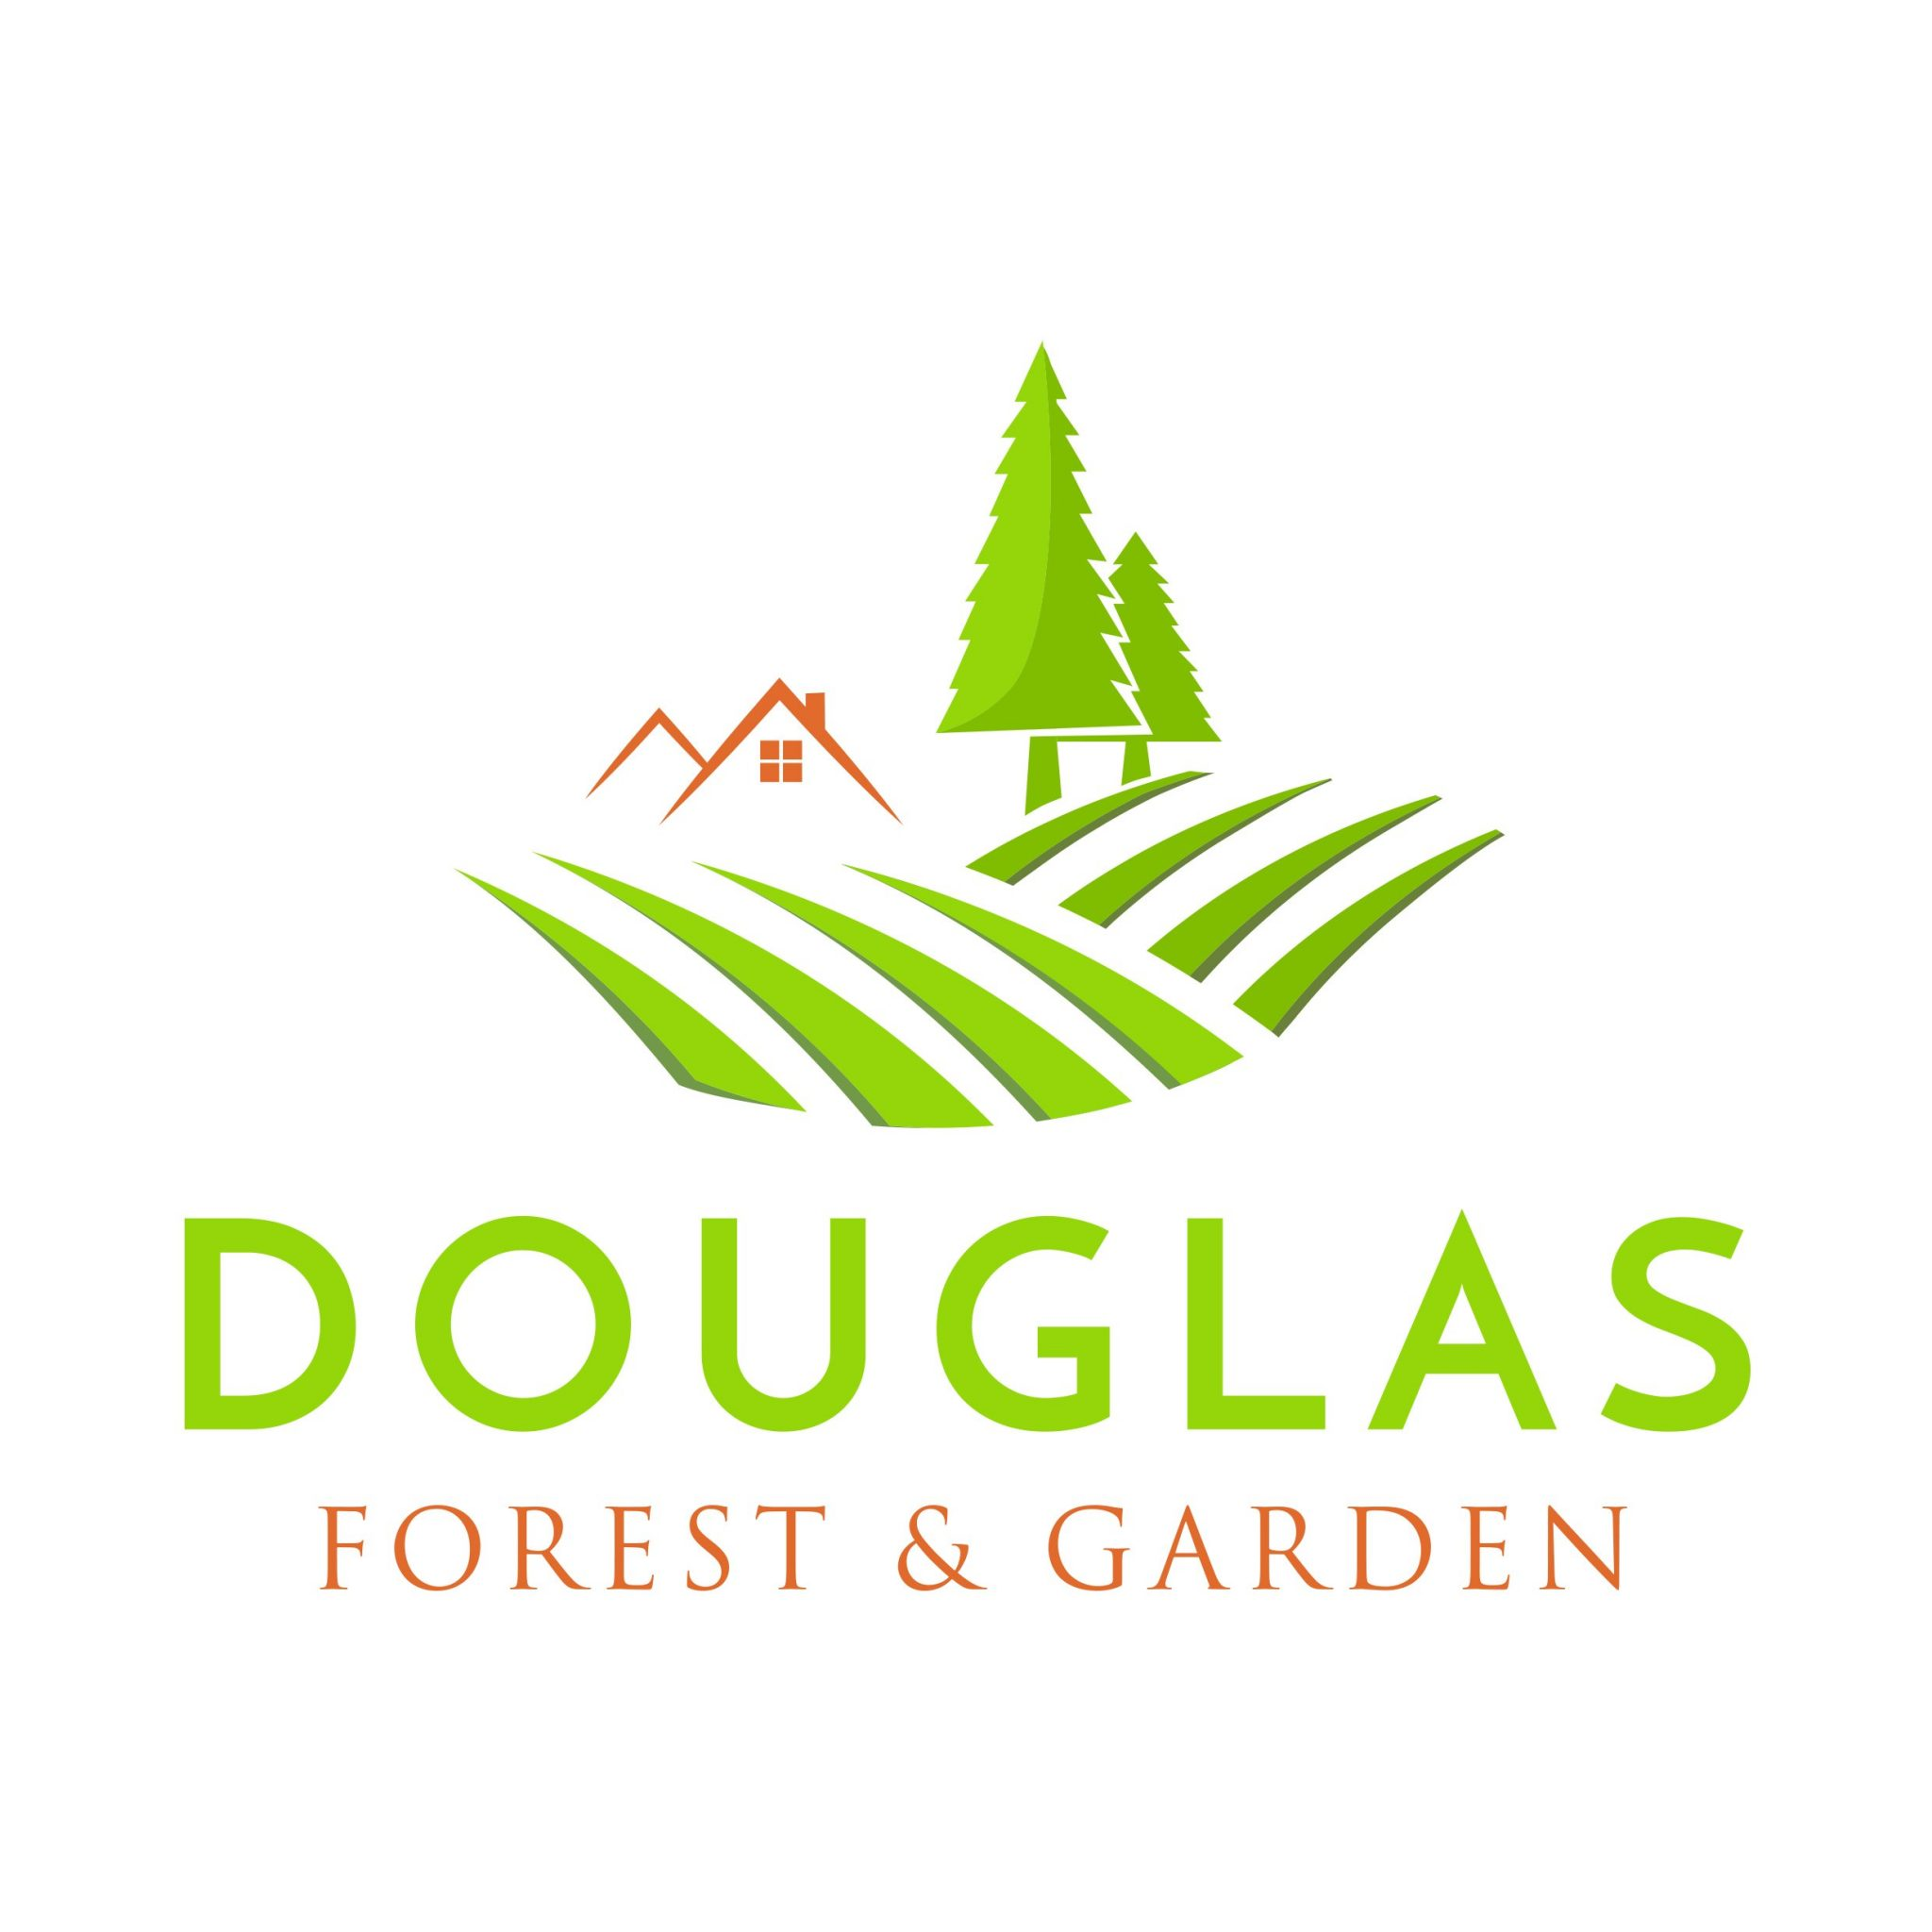 Douglas Forest and Garden